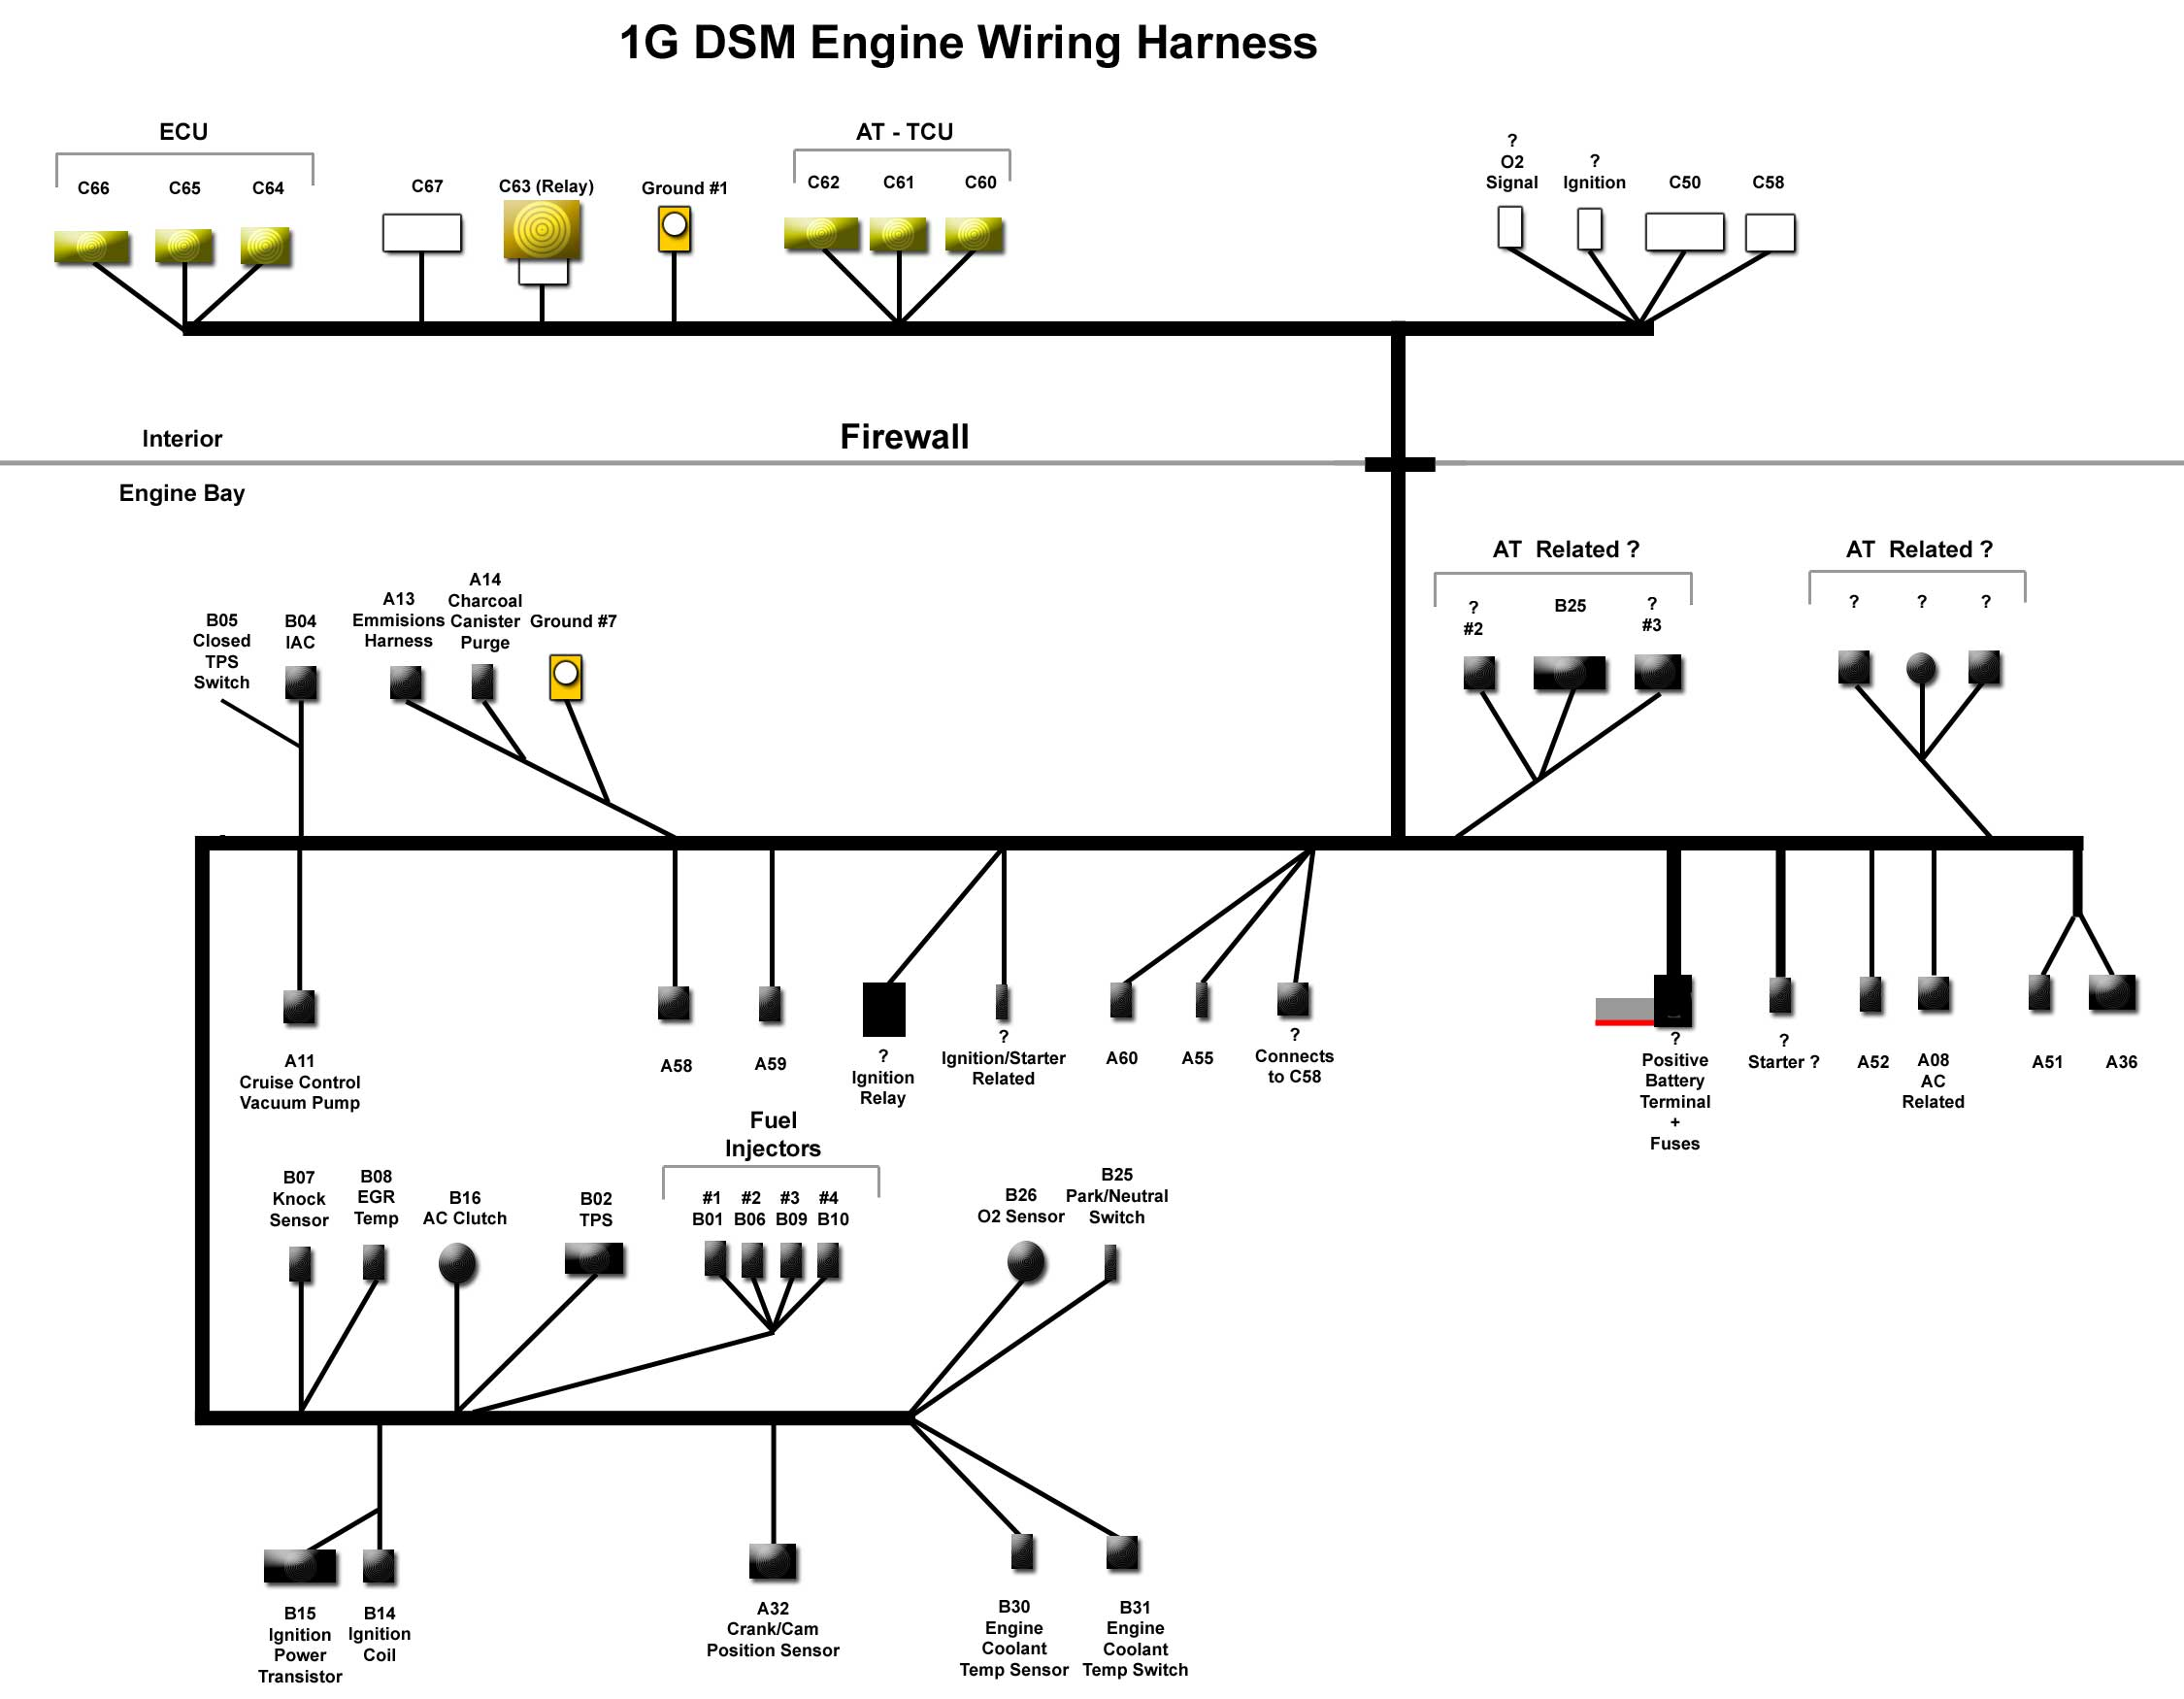 1G DSM EngineHarness wiring loom diagram 1 2wire loom \u2022 wiring diagrams j squared co 4.3 Vortec Wiring-Diagram at fashall.co